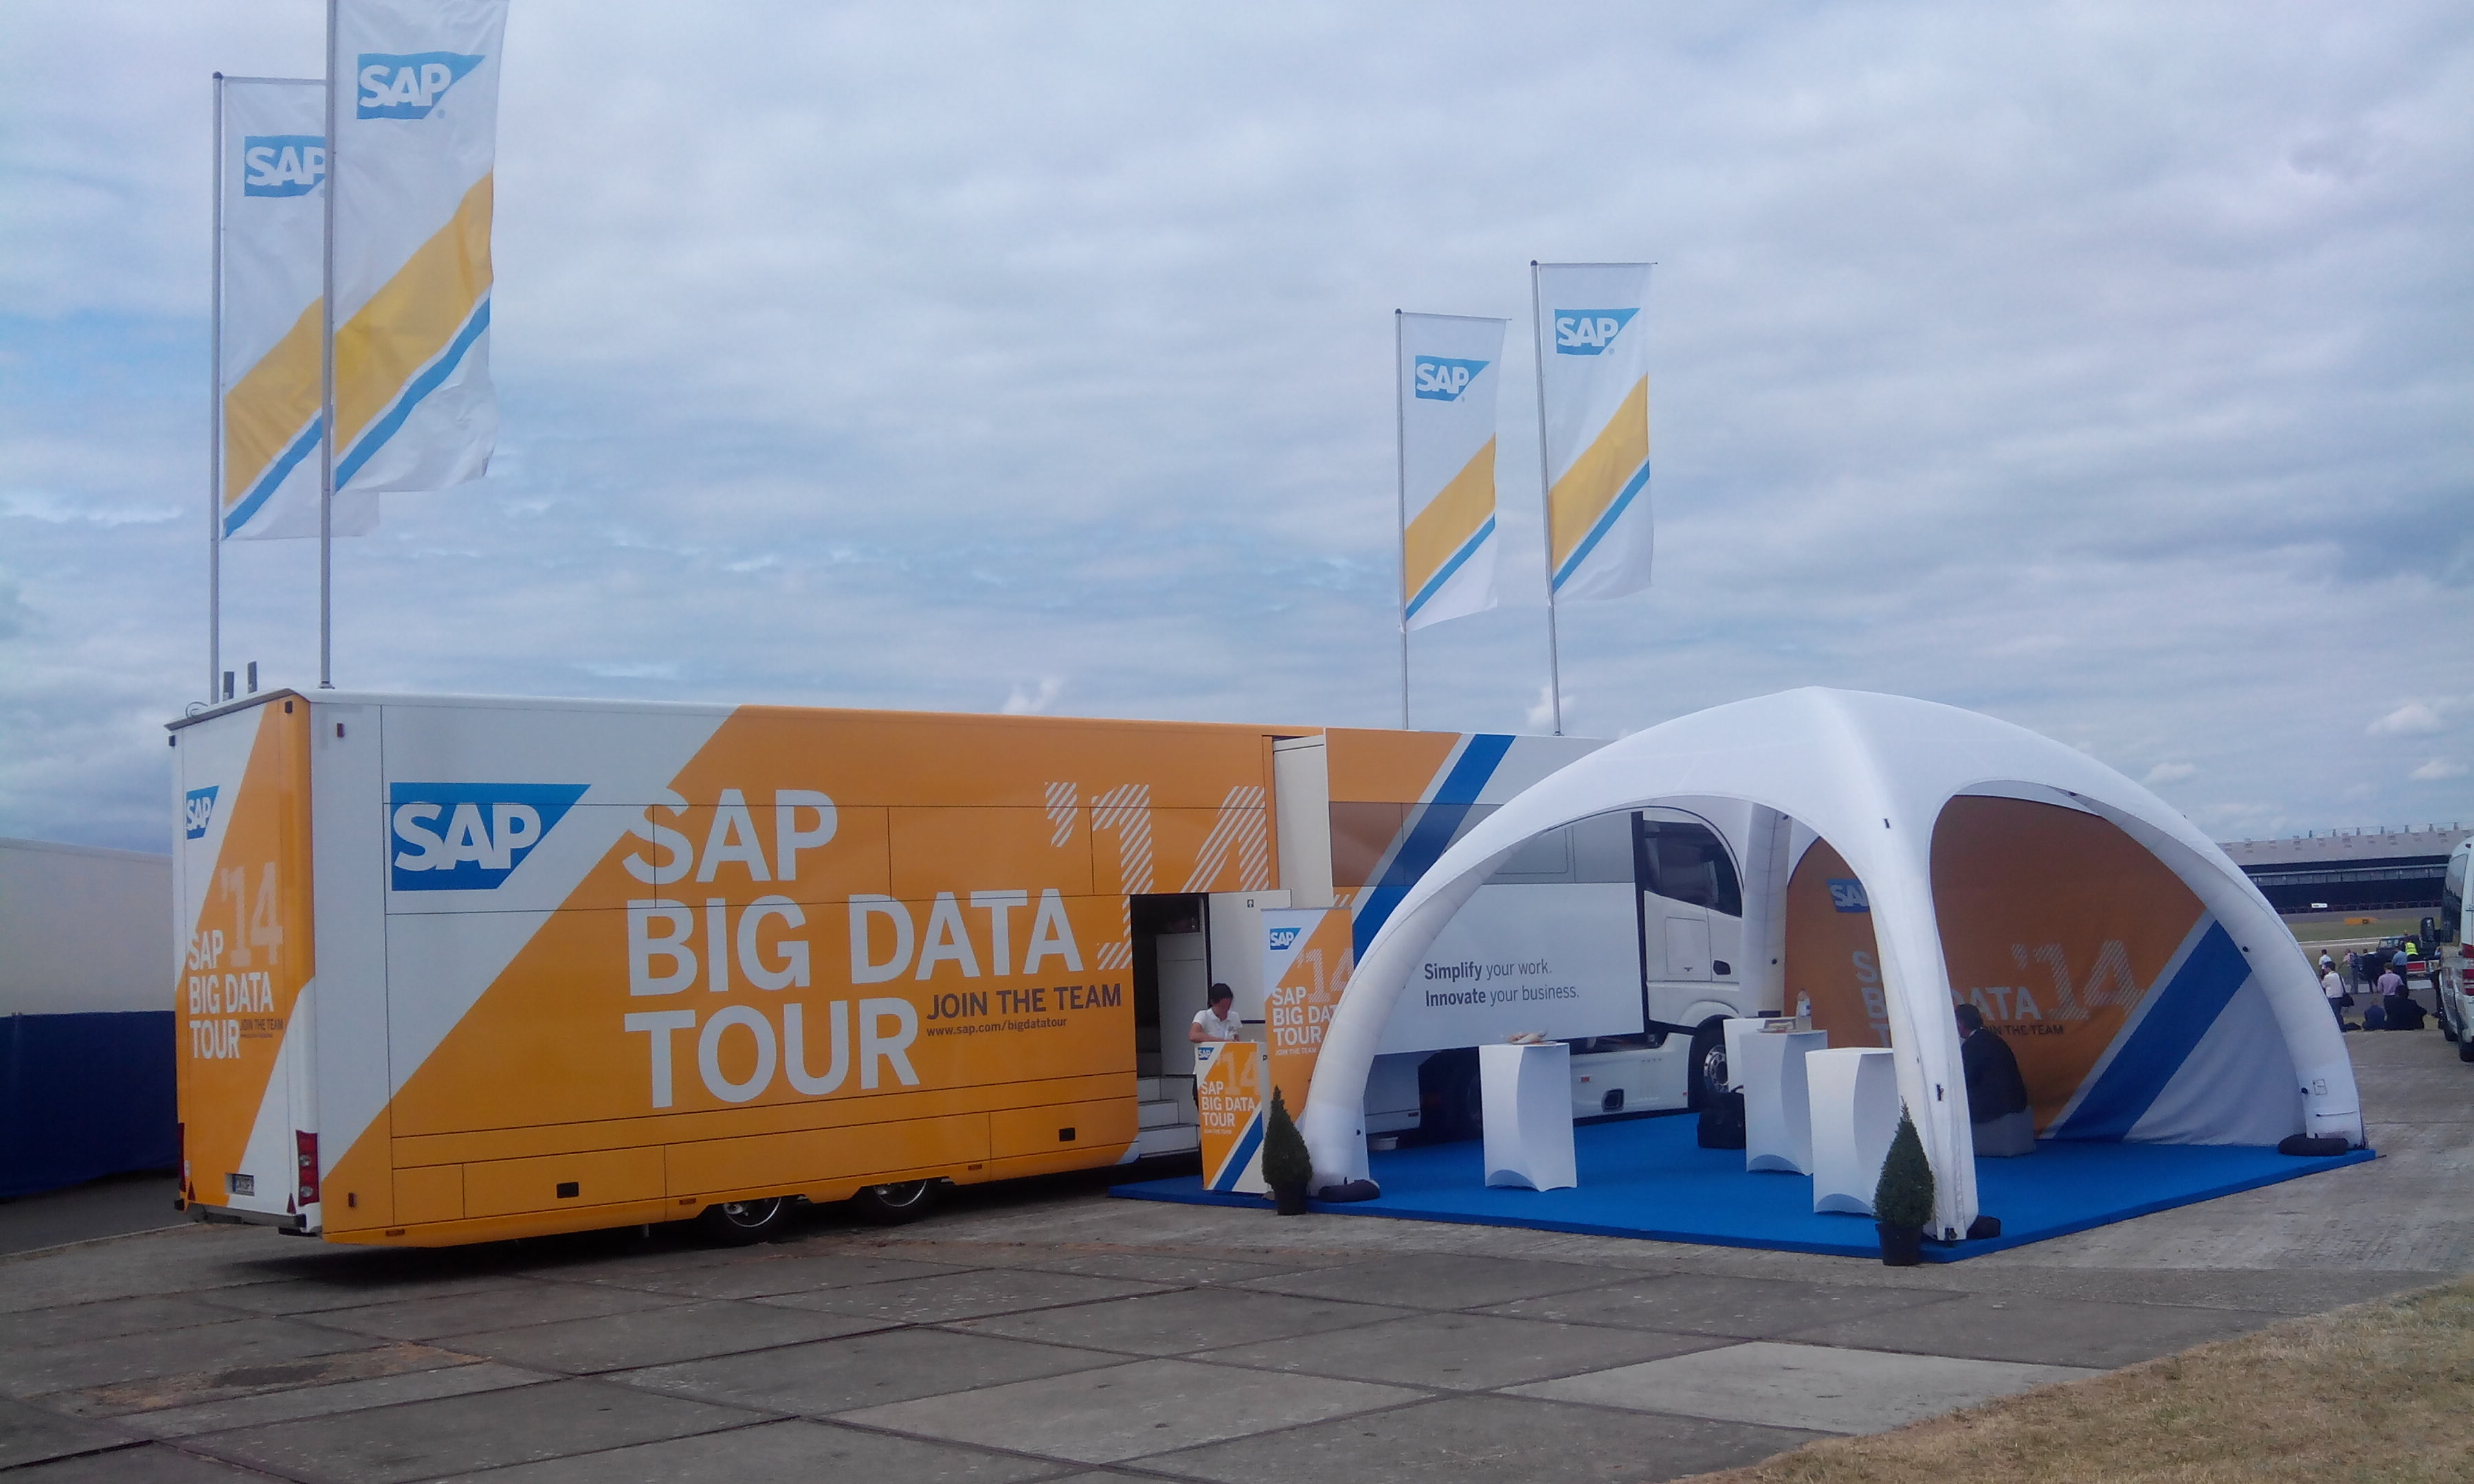 SAP Big Data Tour